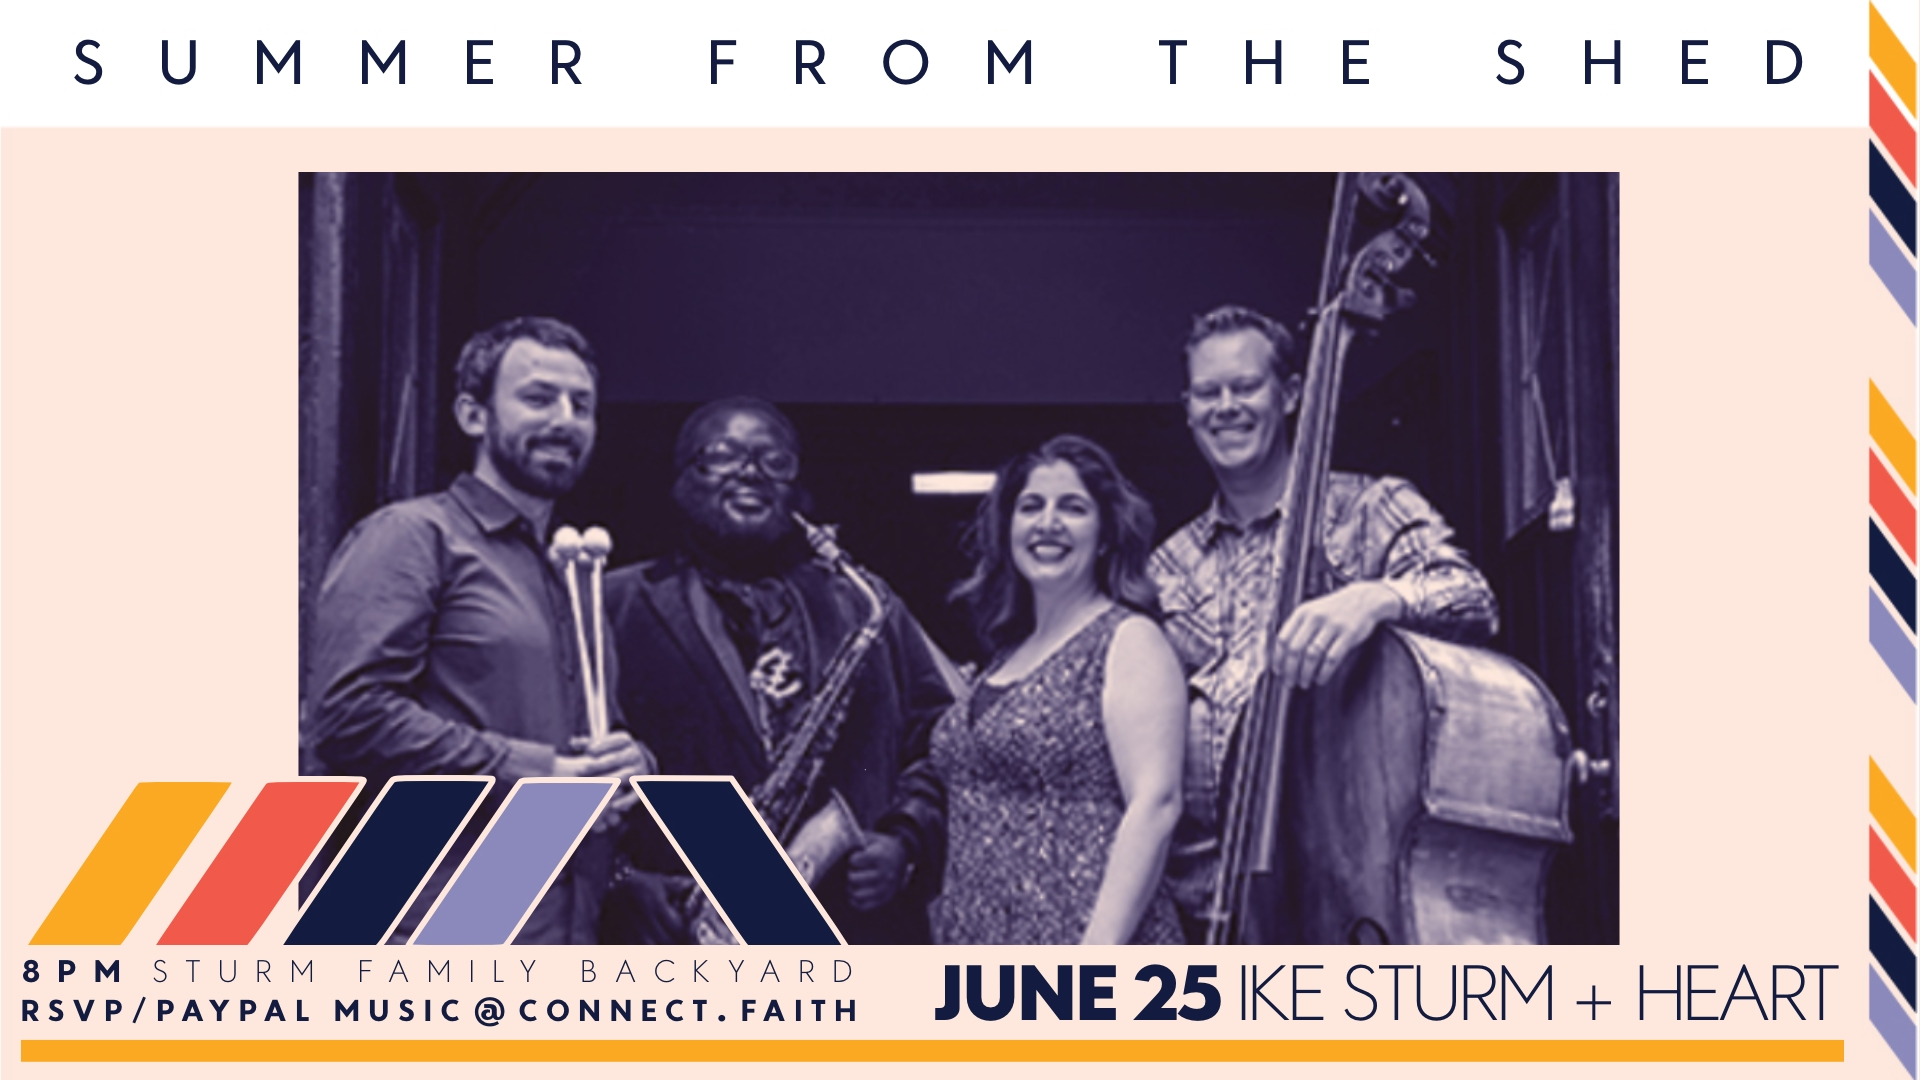 Summer from the Shed | Ike Sturm + Heart | connect.faith